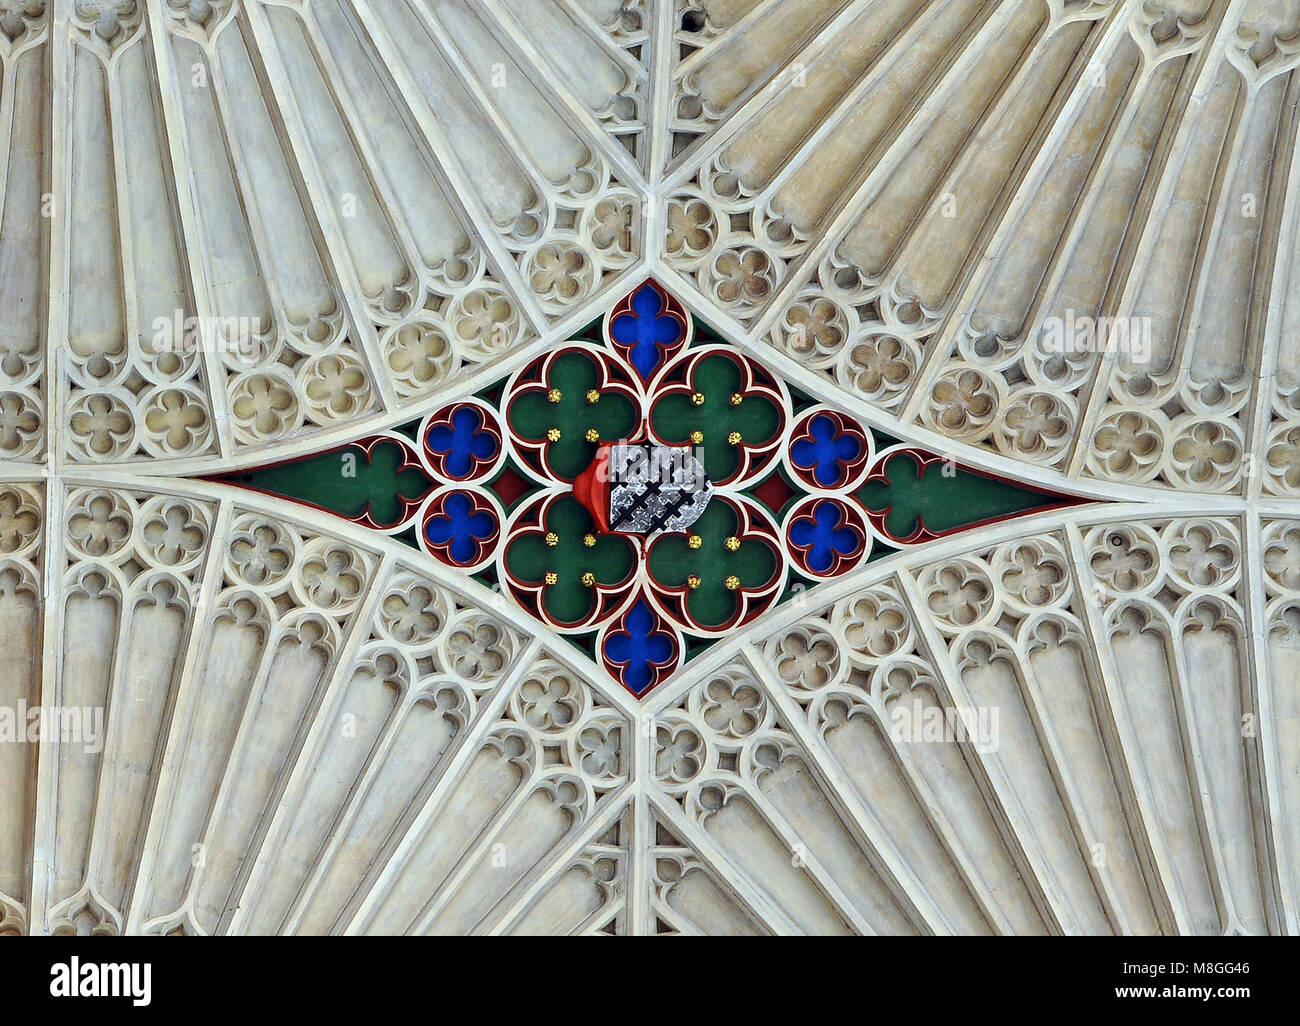 The Abbey Church of Saint Peter and Saint Paul, Bath, - Stock Image